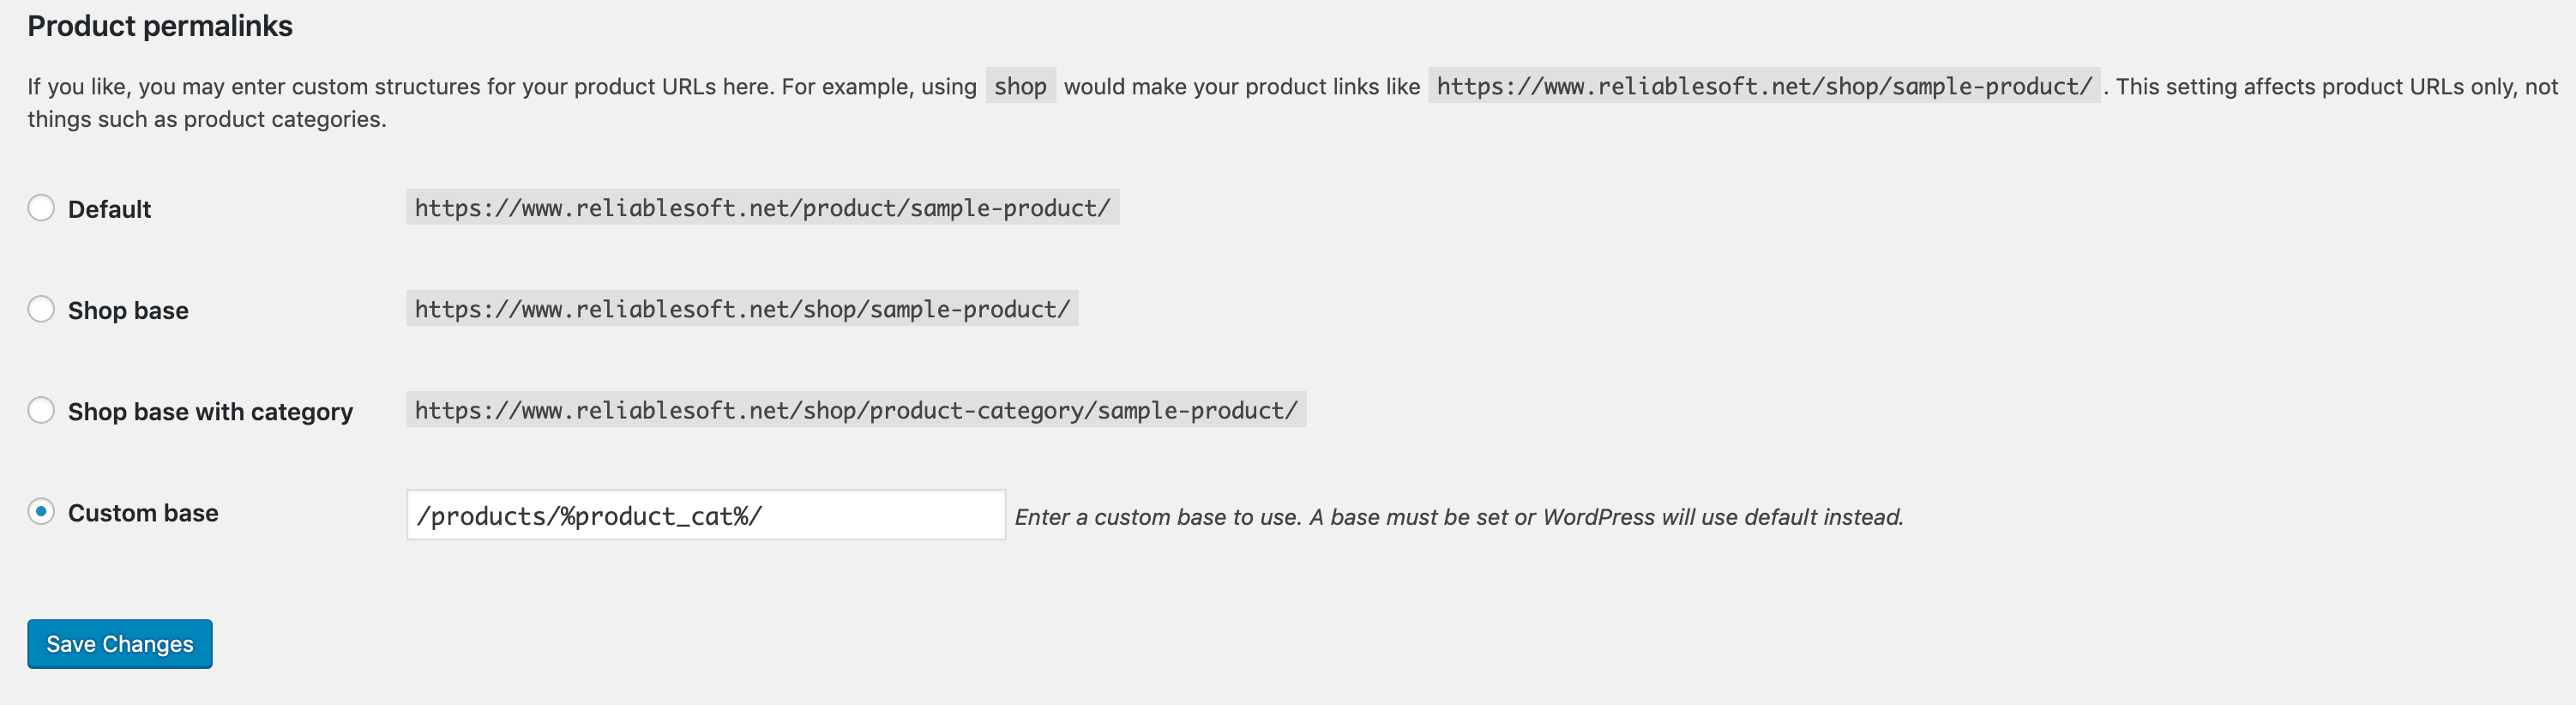 WooCommerce Permalink Settings